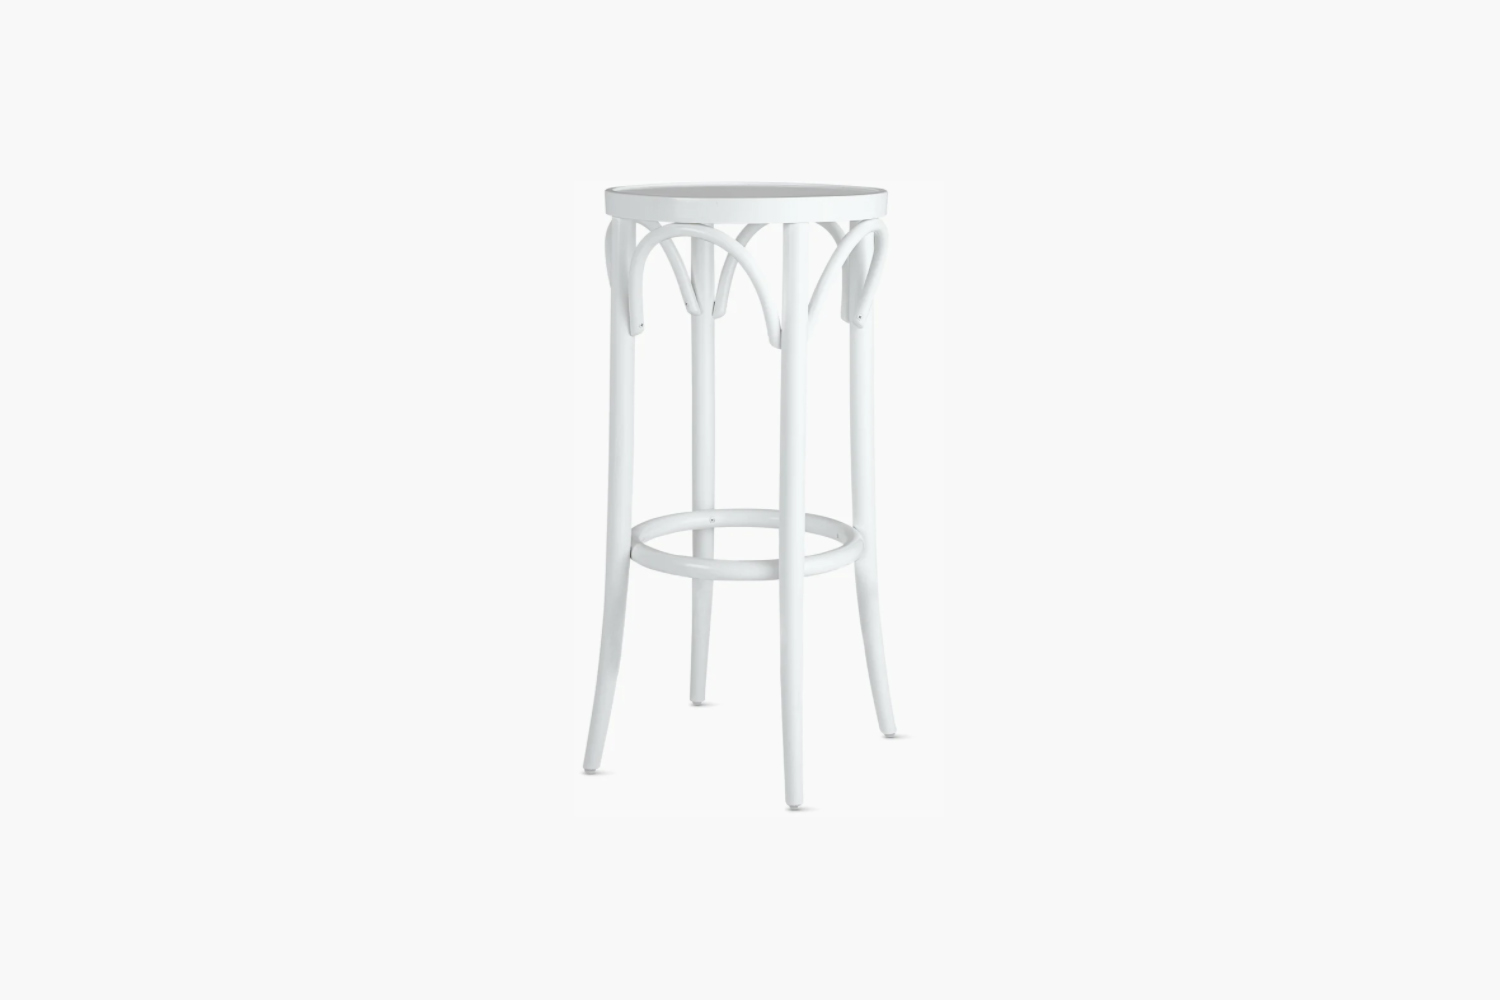 Designed by Michael Thonet, the Era Stool, shown in white, is $8. at Design Within Reach.